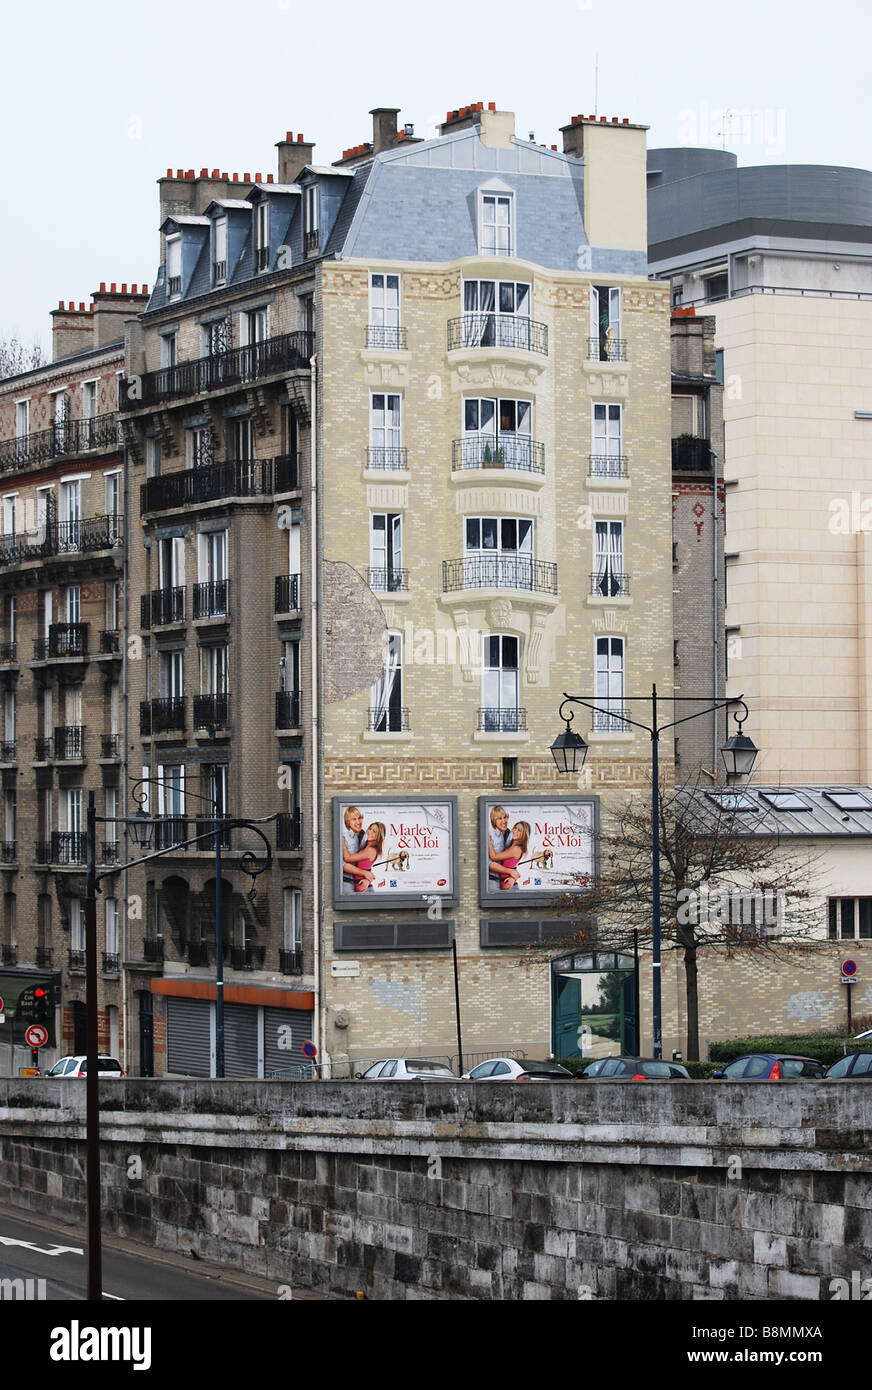 Ugly gable wall painted over paris number 2703 - Stock Image